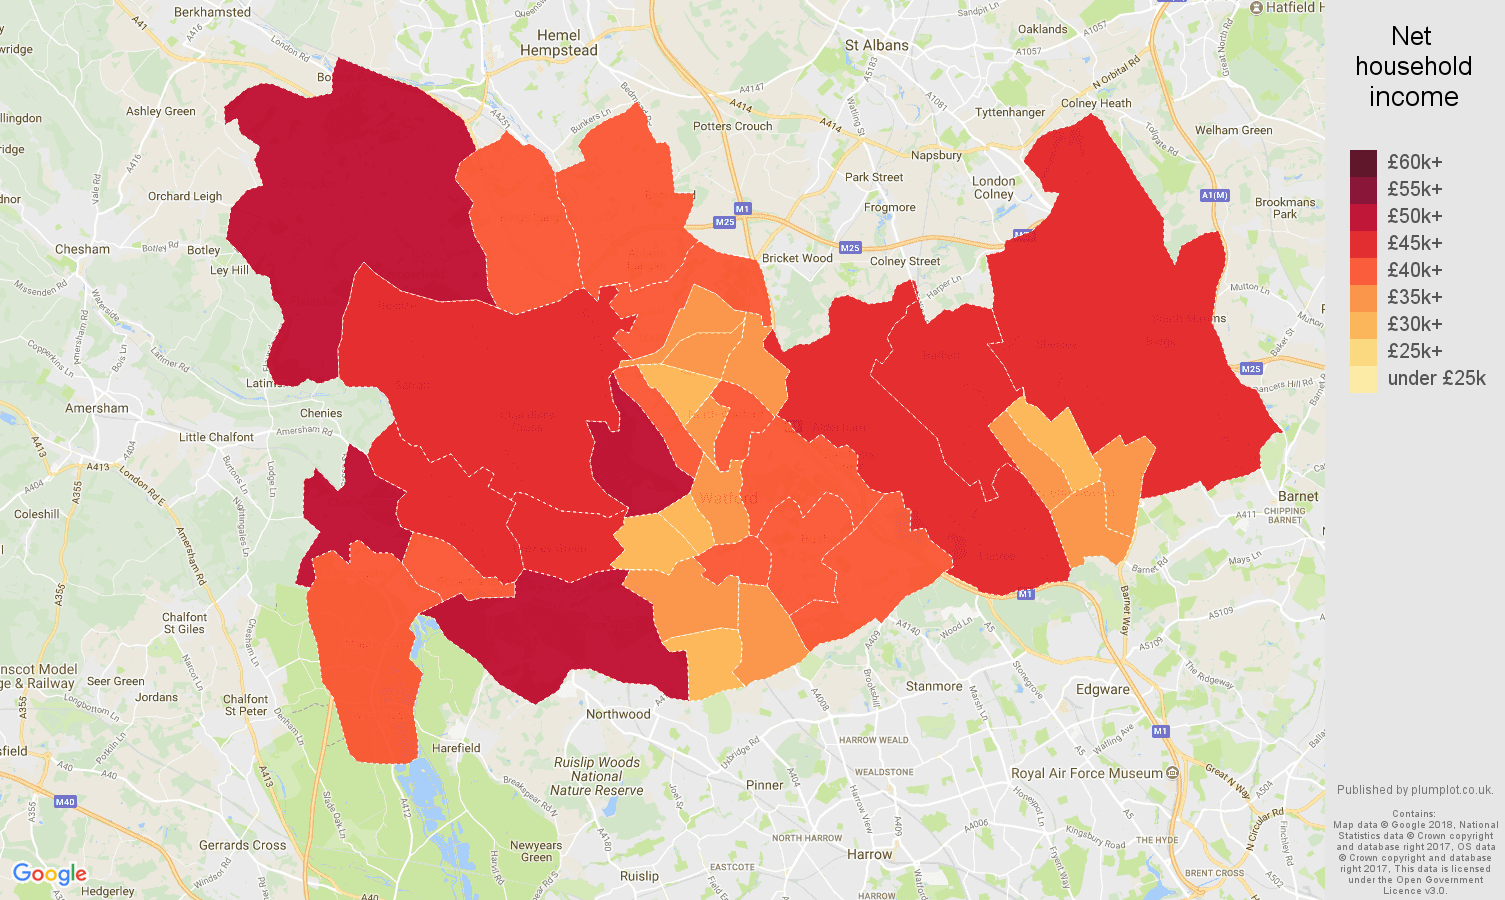 Watford net household income map